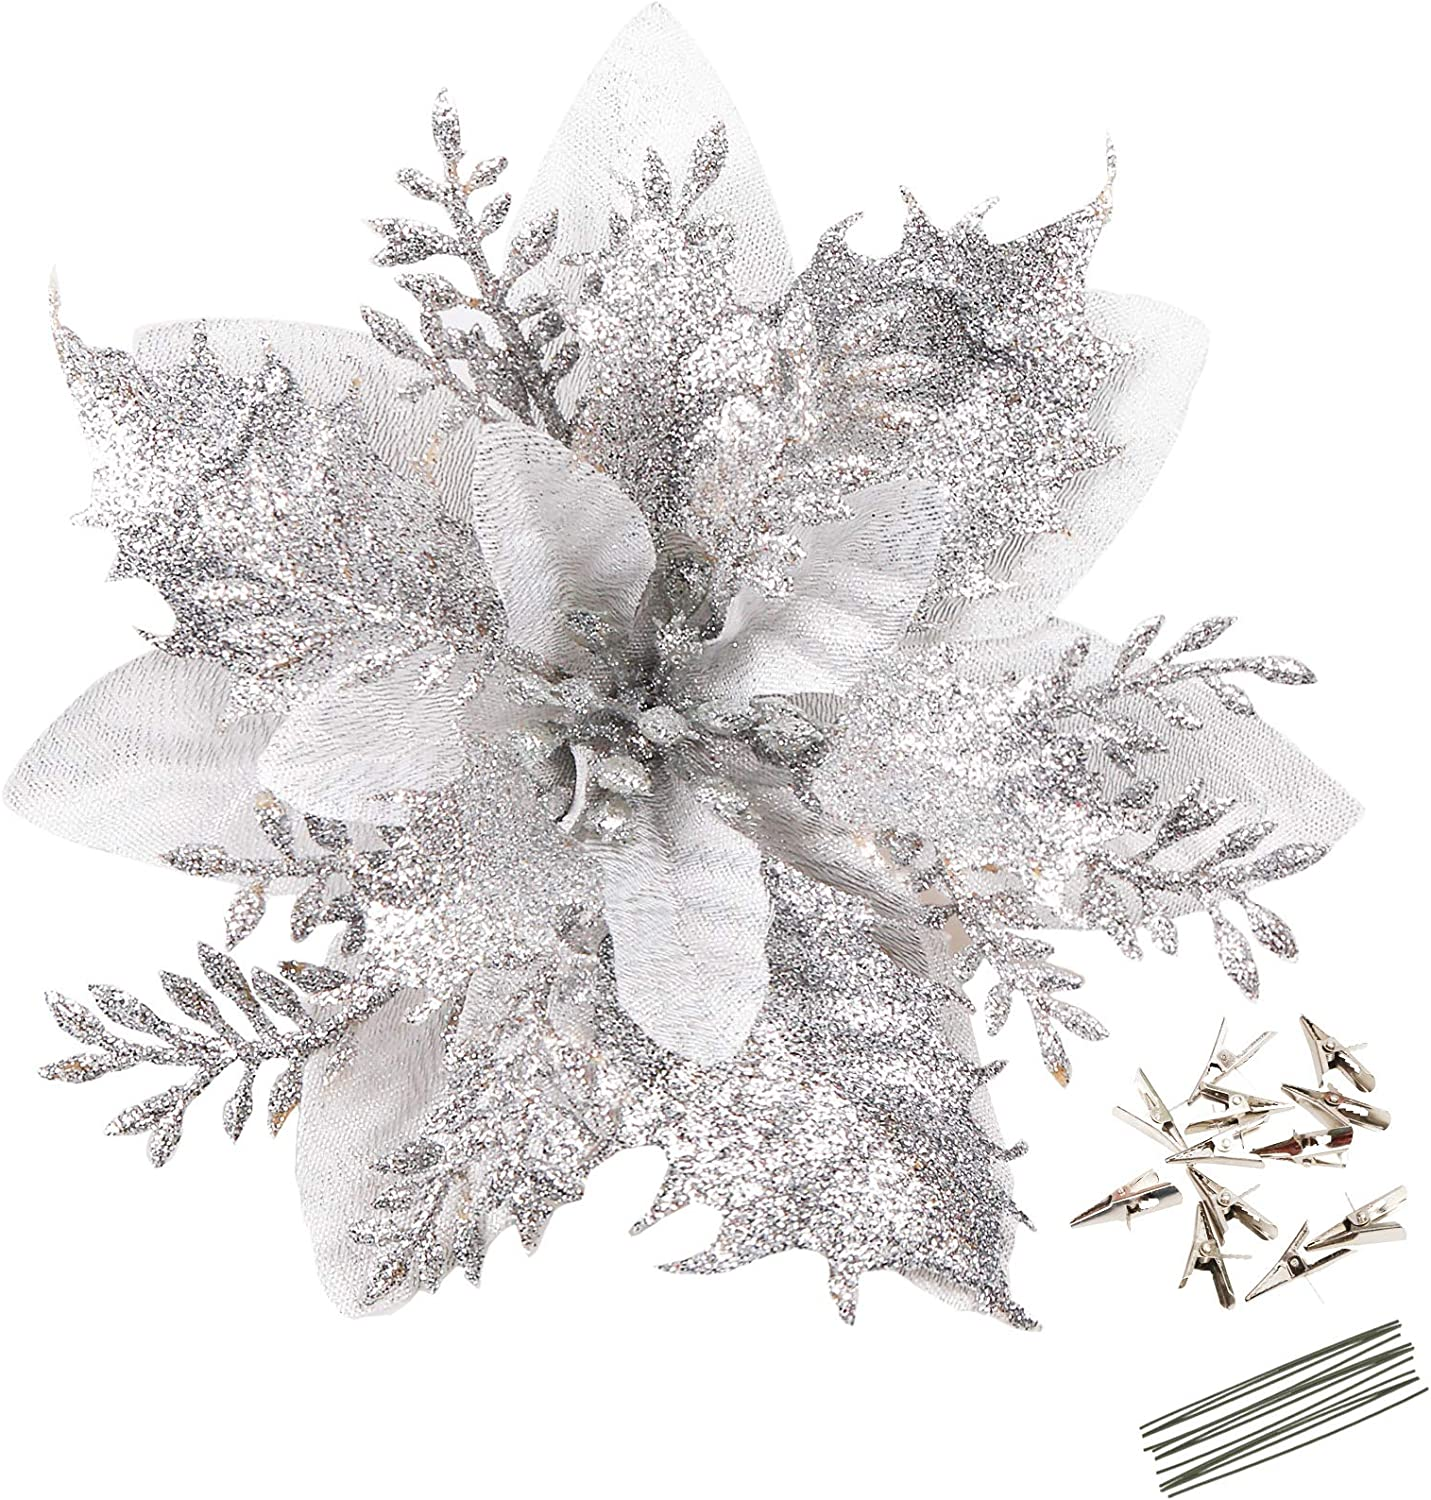 Greentime 12 Pcs 14cm / 5.5in Silver Poinsettia Artificial Christmas Flowers with Clips and Stems Glitter Christmas Tree Poinsettia Decorations for Thanksgiving Xmas Wedding Party Wreath